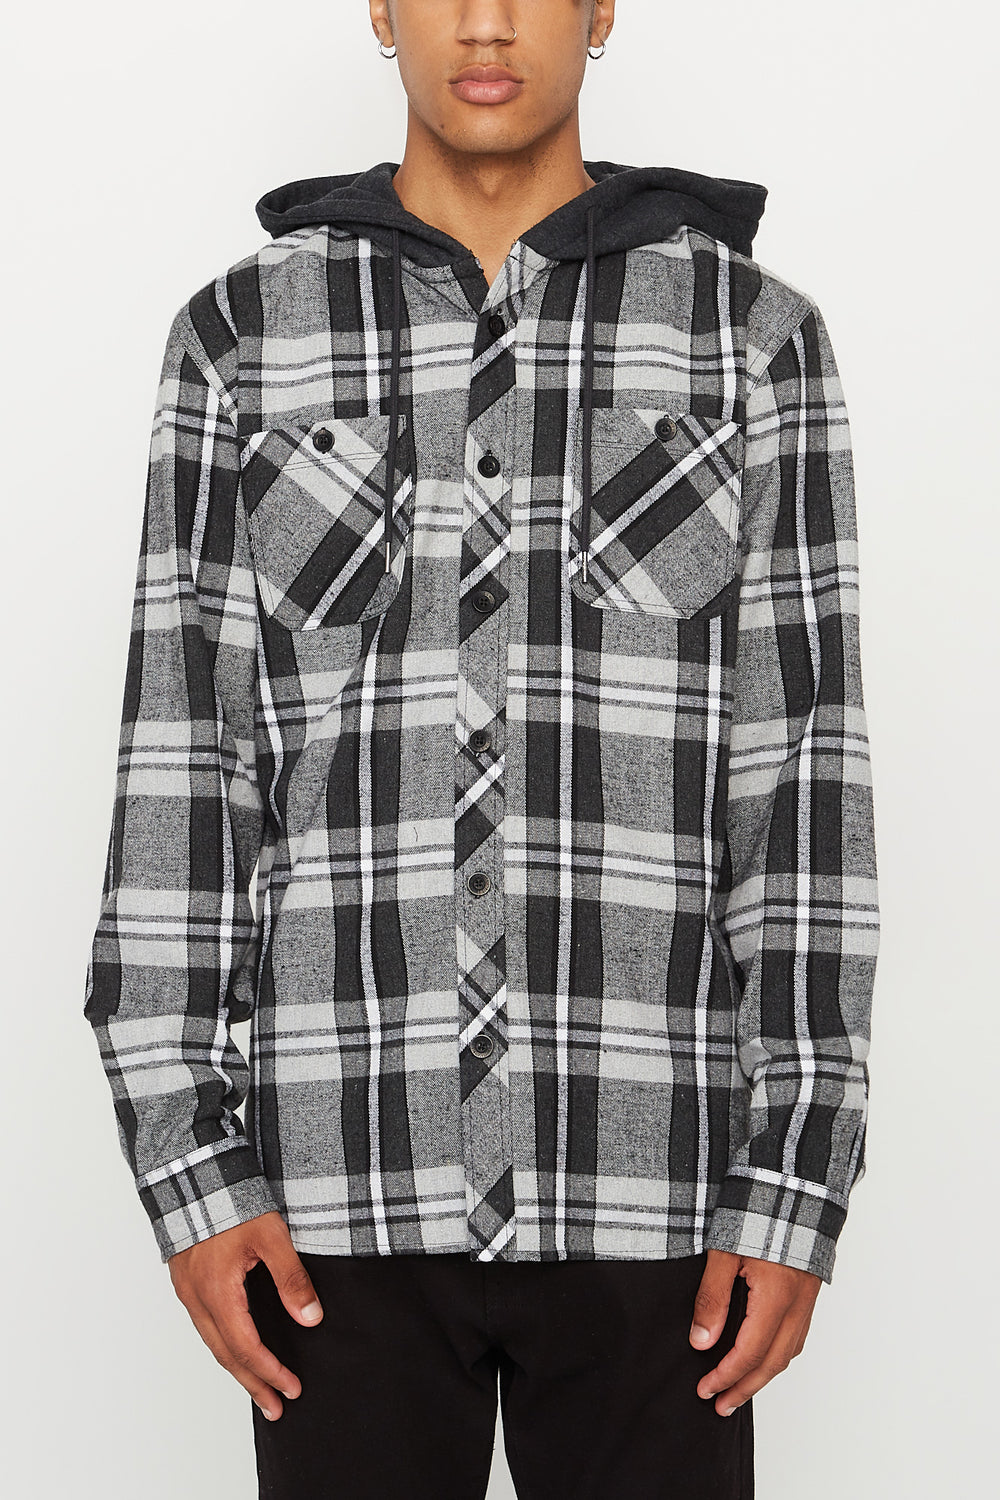 West49 Mens Flannel Hooded Button-Up Shirt Heather Grey